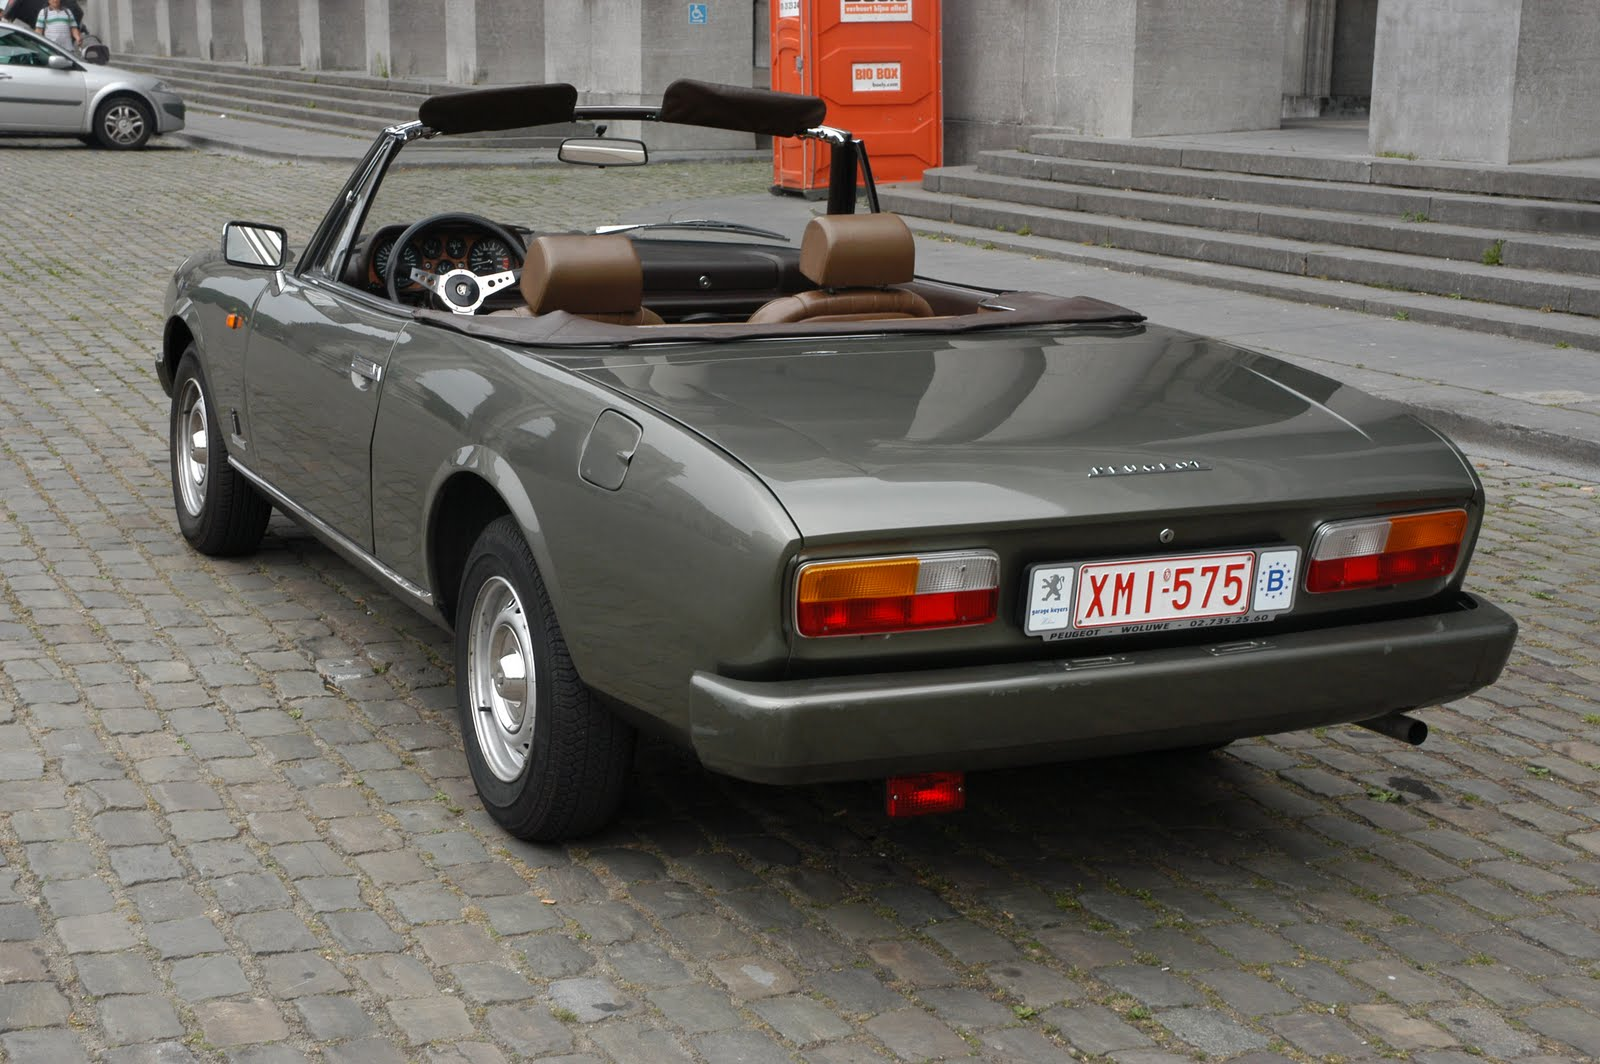 Cars That Start With A J >> Peugeot 504 Cabriolet